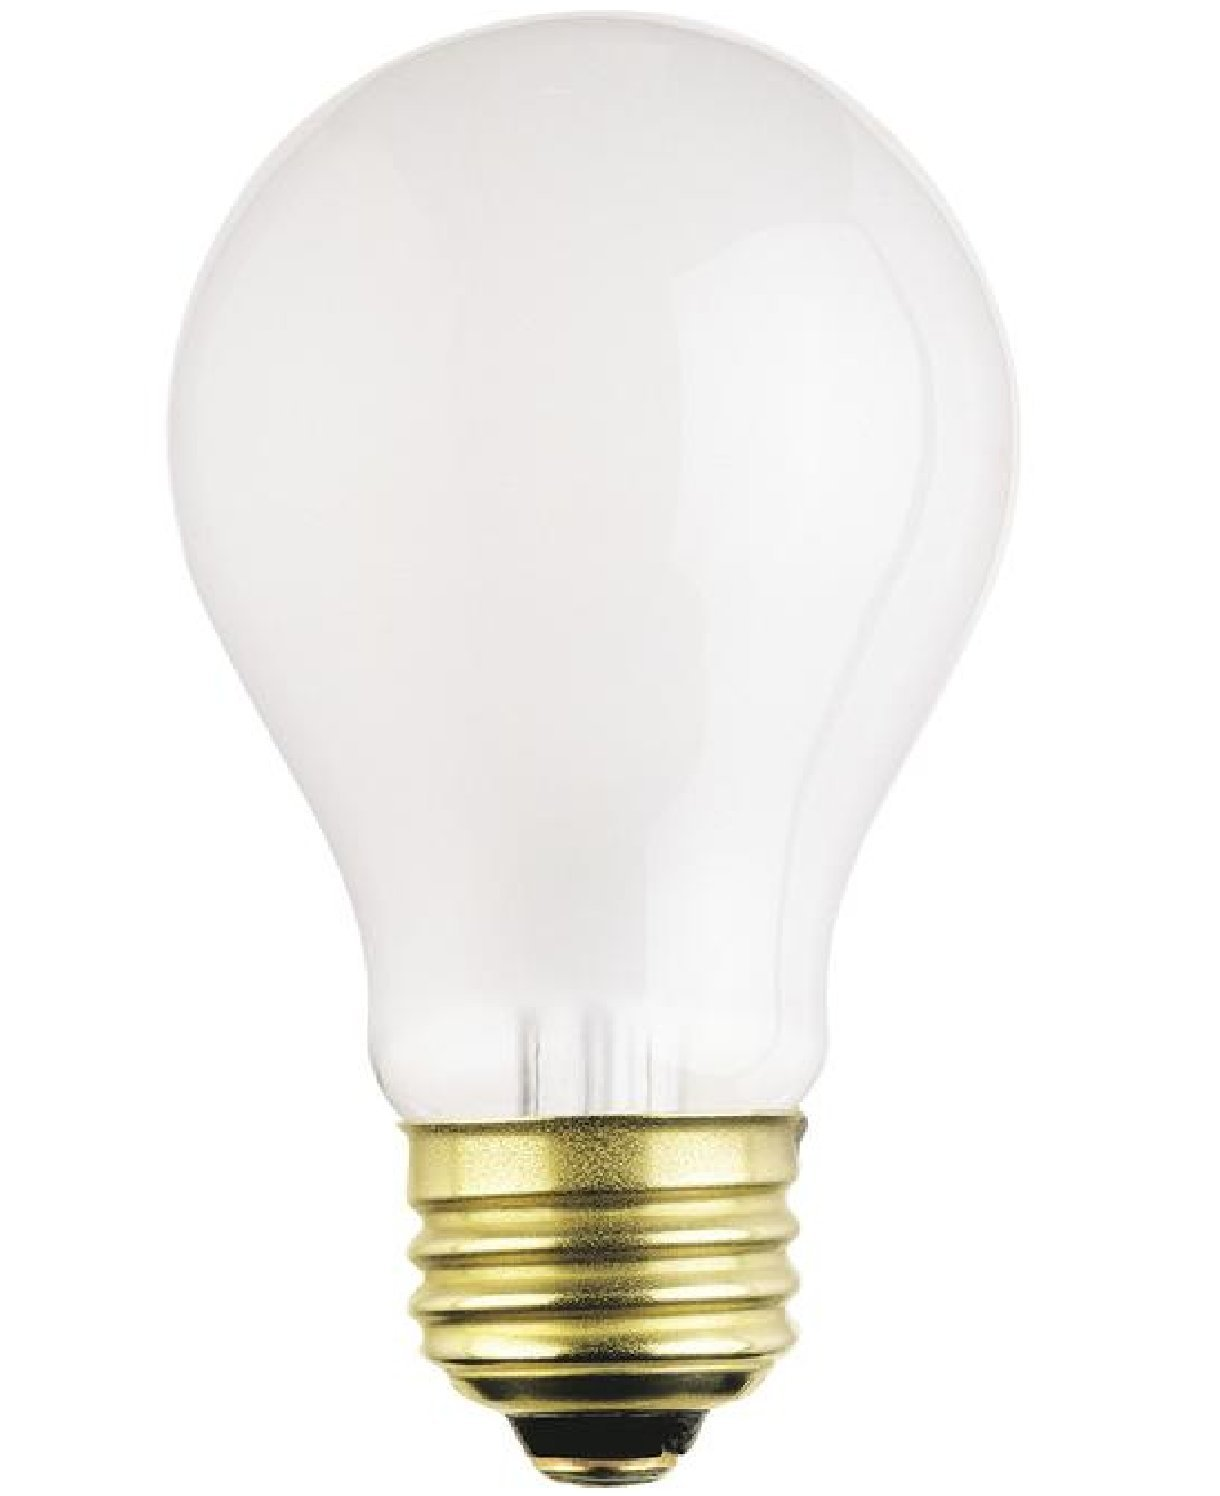 (12-Bulbs) 75 Watt A19 Rough Service Incandescent Heavy Duty Light Bulb, Frosted, Medium Base 120 Volt